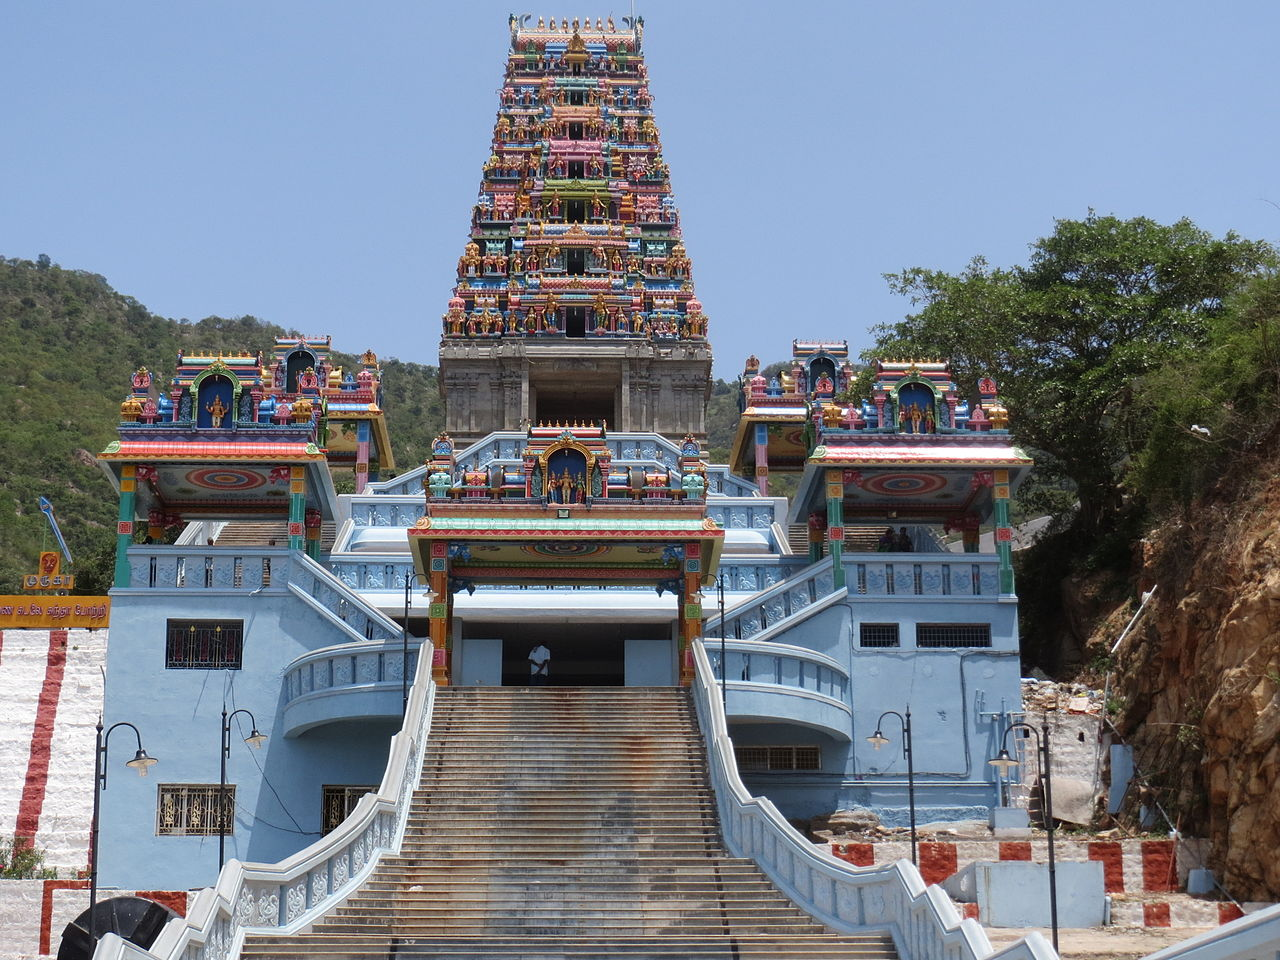 Top Attraction Place In Coimbatore-Marudhamalai Hill Temple